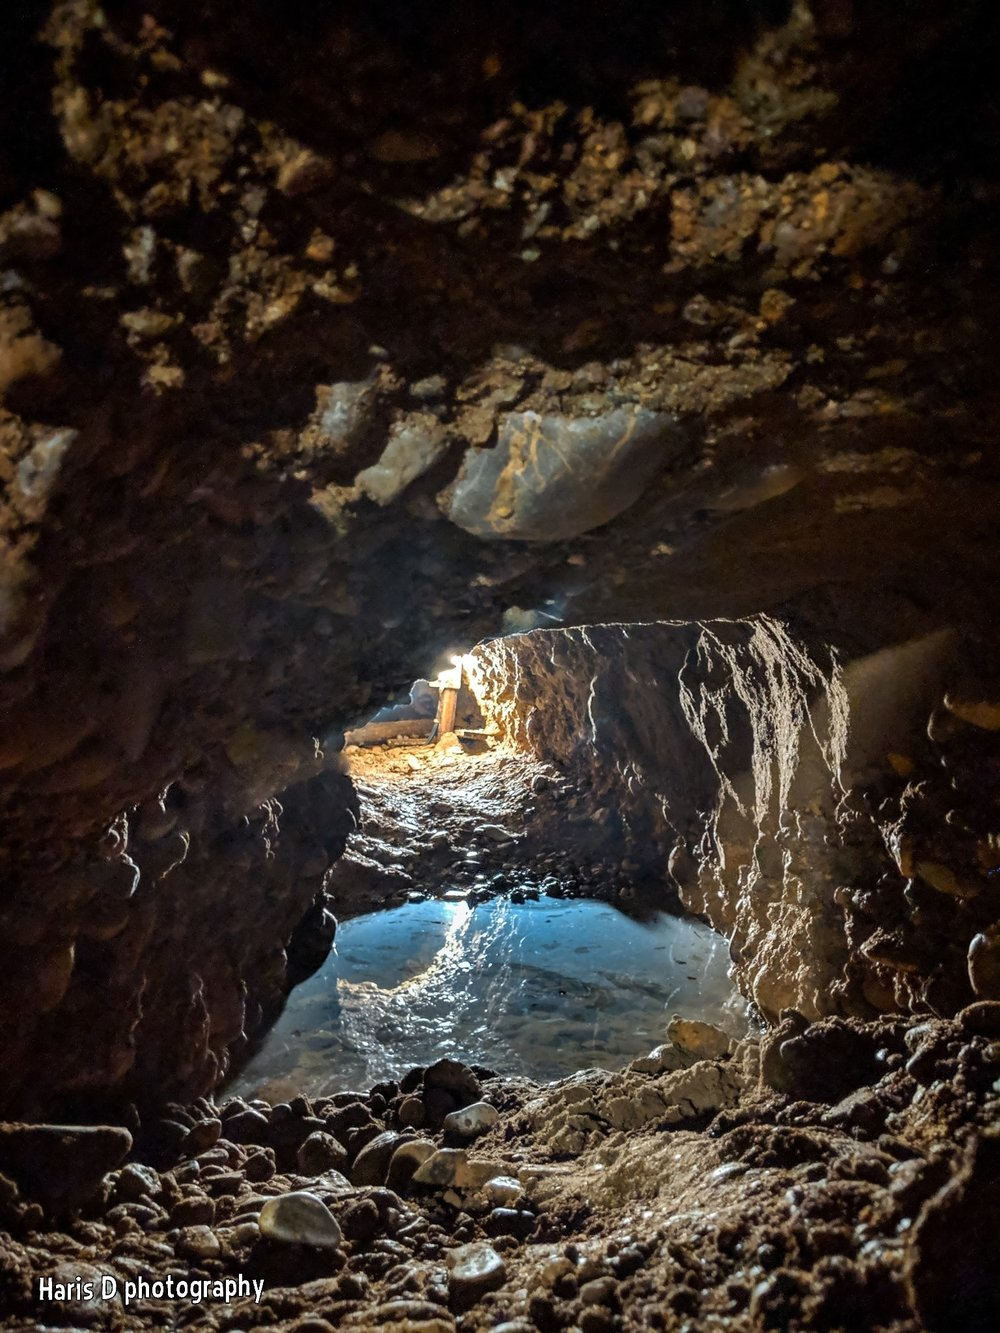 Sacred High Frequency Water from the Womb of the Bosnian Pyramid Complex   Photographer:  Haris Delibasic